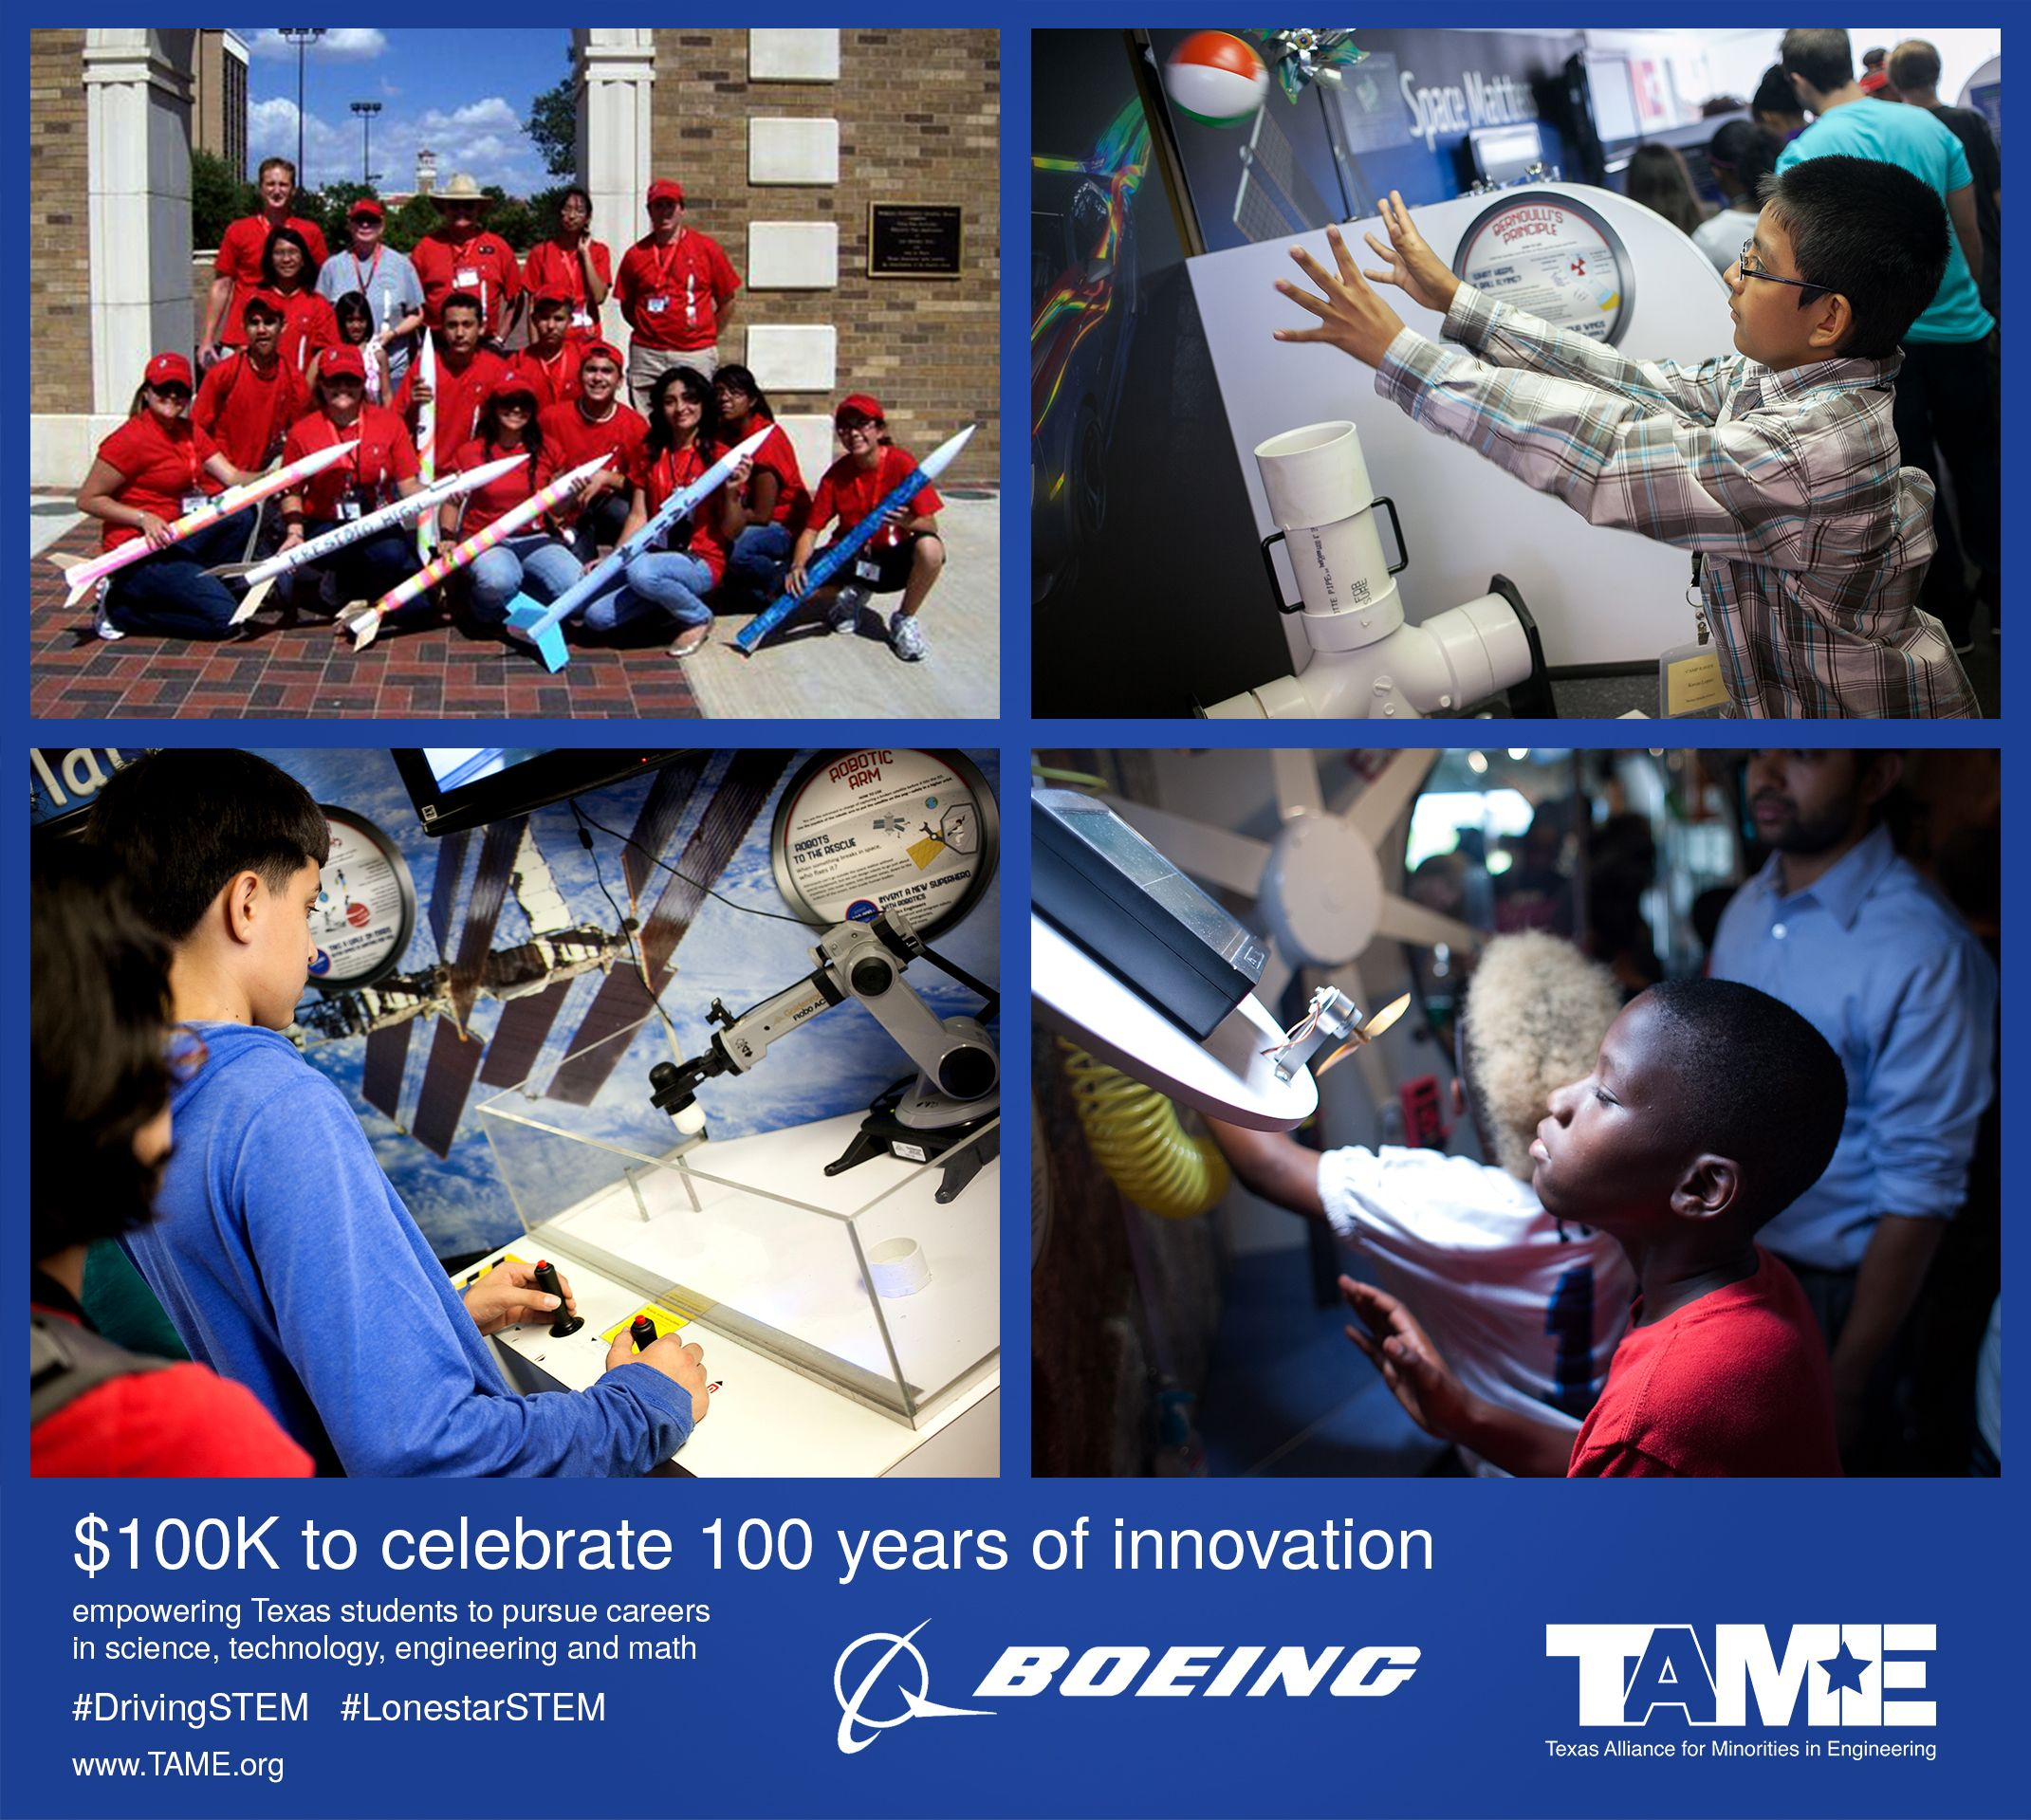 Boeing Awards $100K to Celebrate 100 Years of Innovation